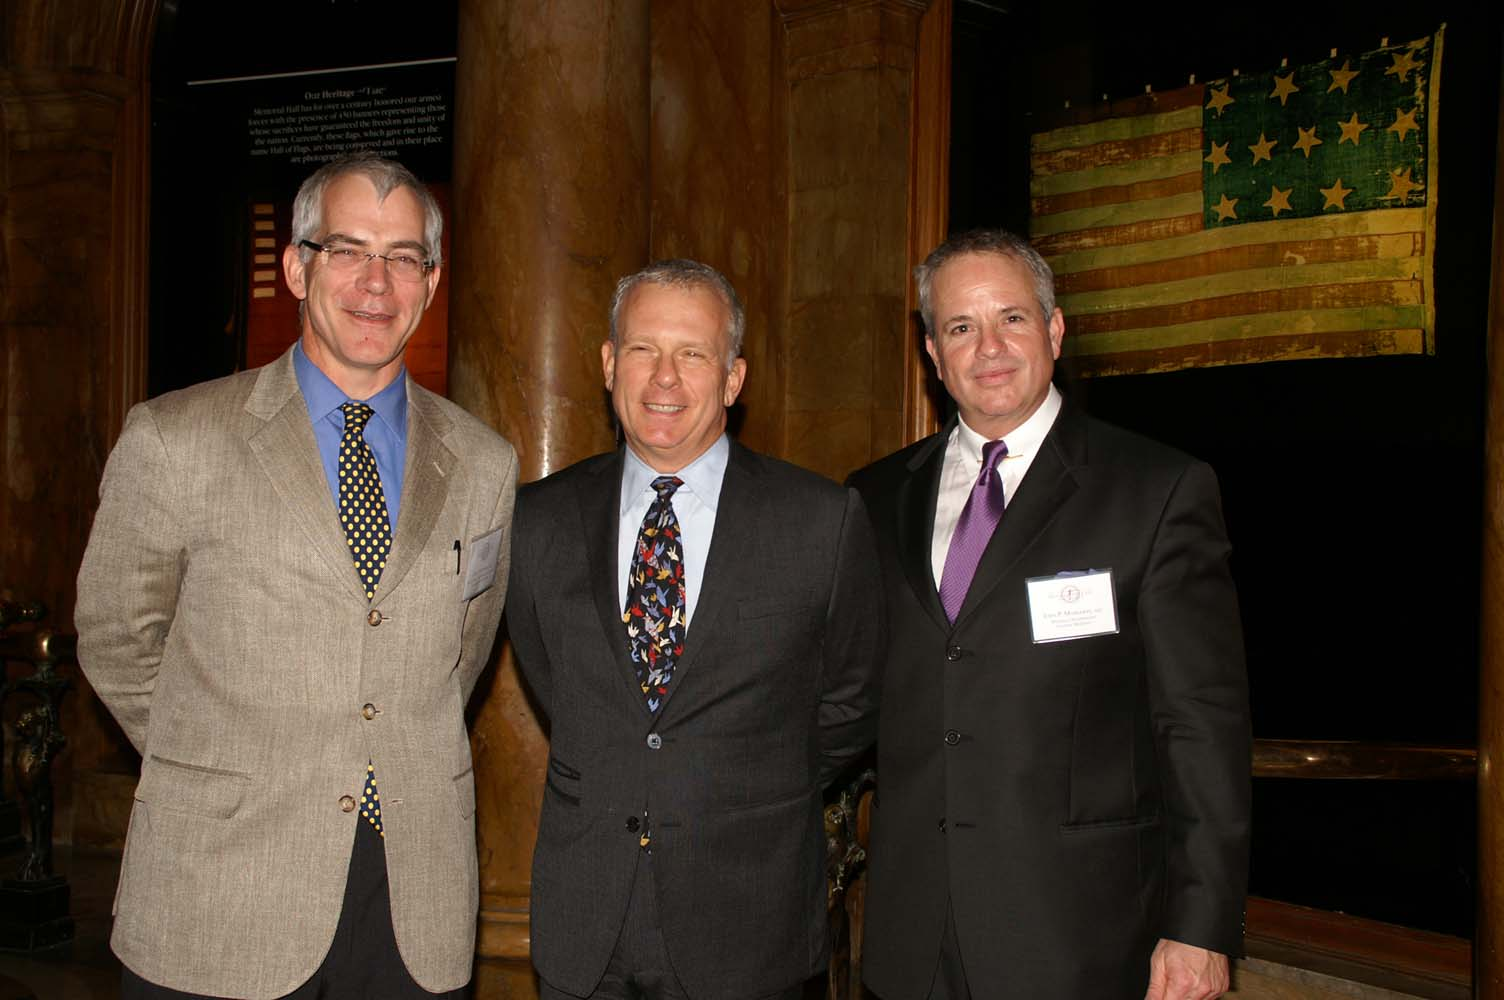 Board member John Tittmann, National ICAA President Paul Gunther, Chapter President John Margolis